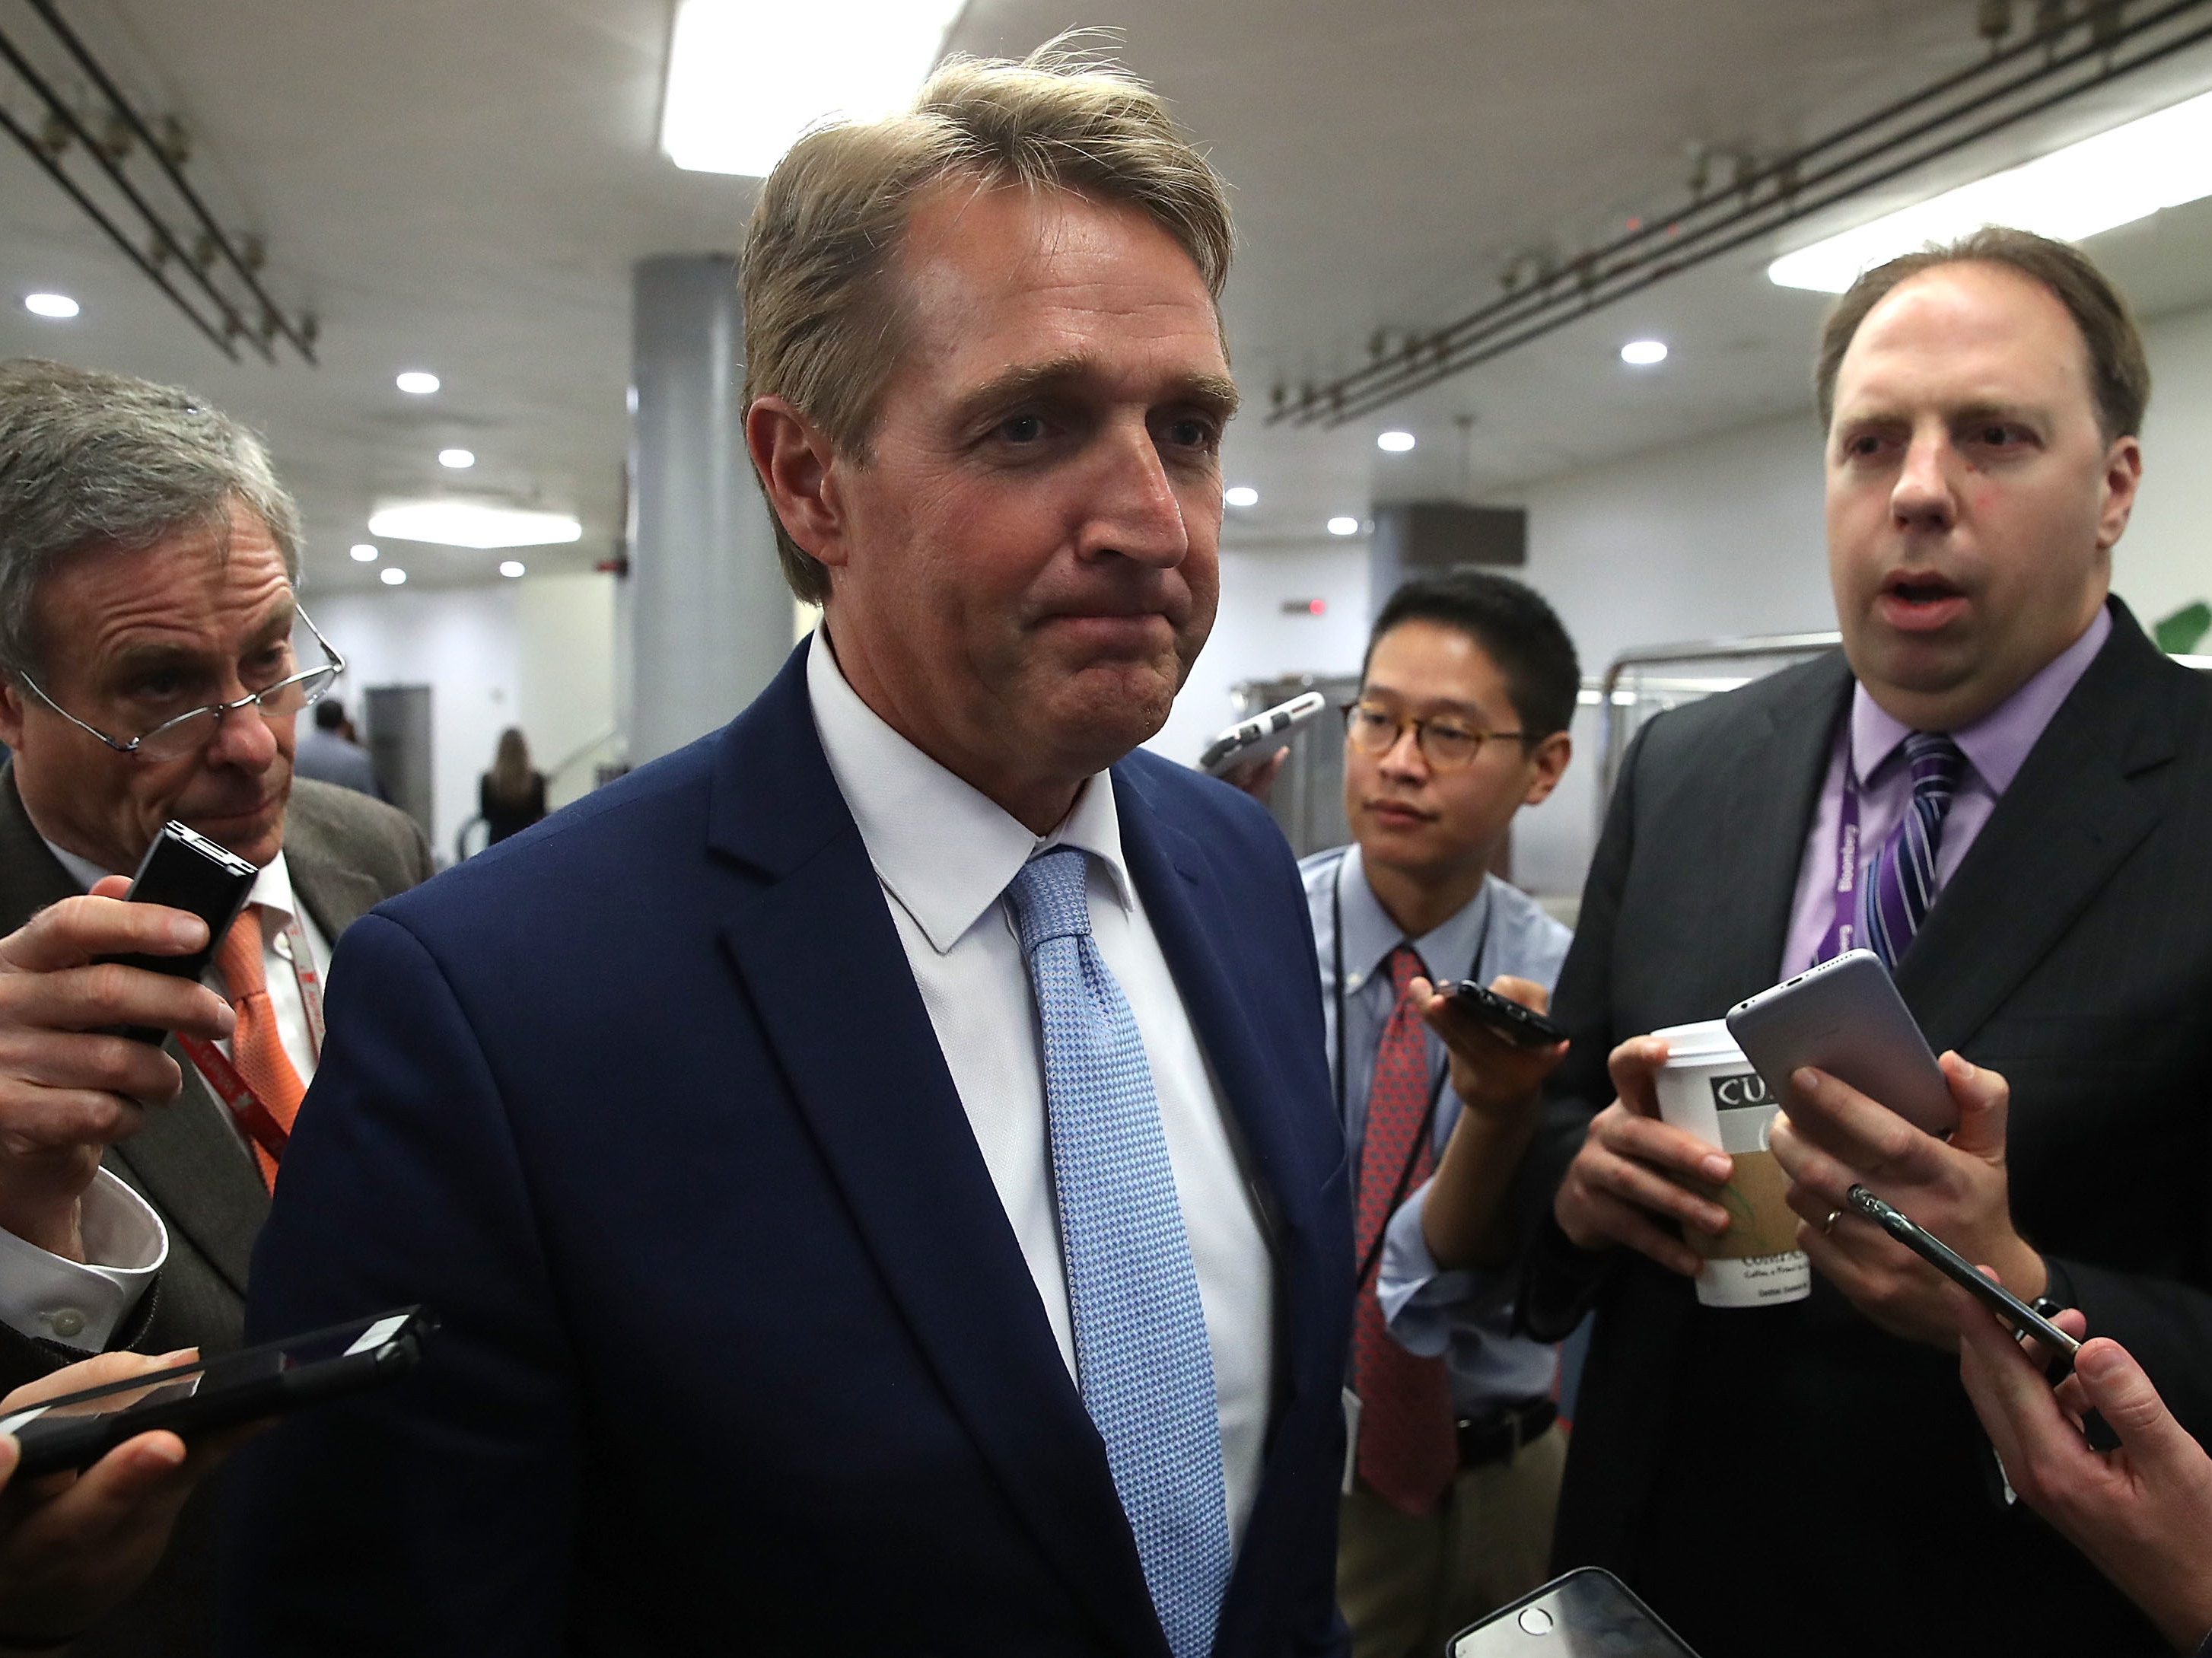 Trump goes after the Senate, Jeff Flake and media on Twitter